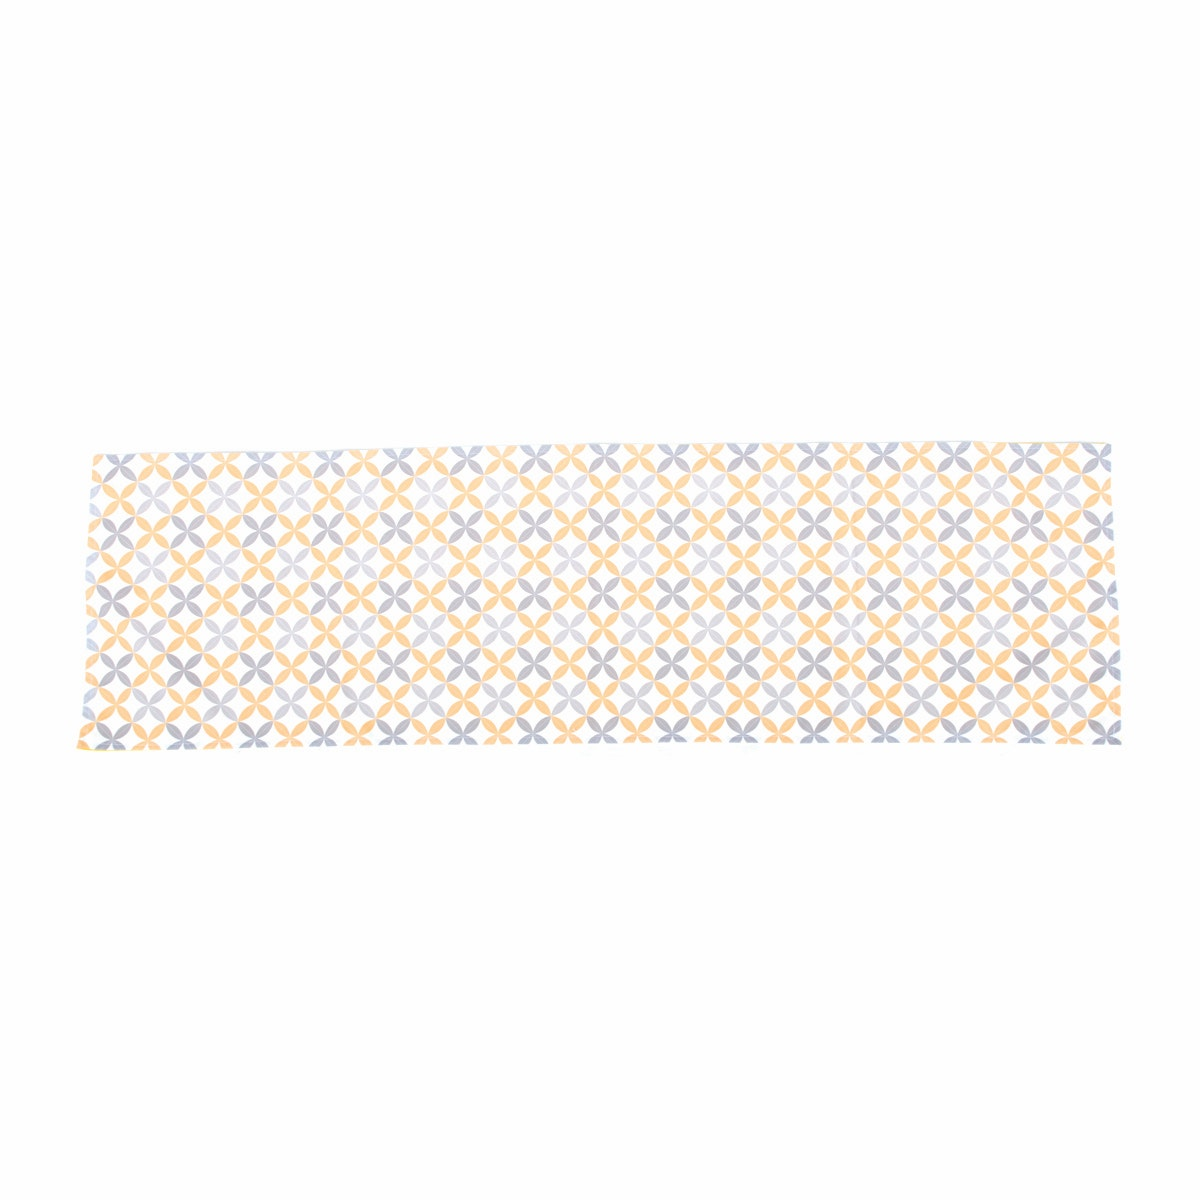 Glerry Home Decor Sunny Hues Table Runner 150x30cm